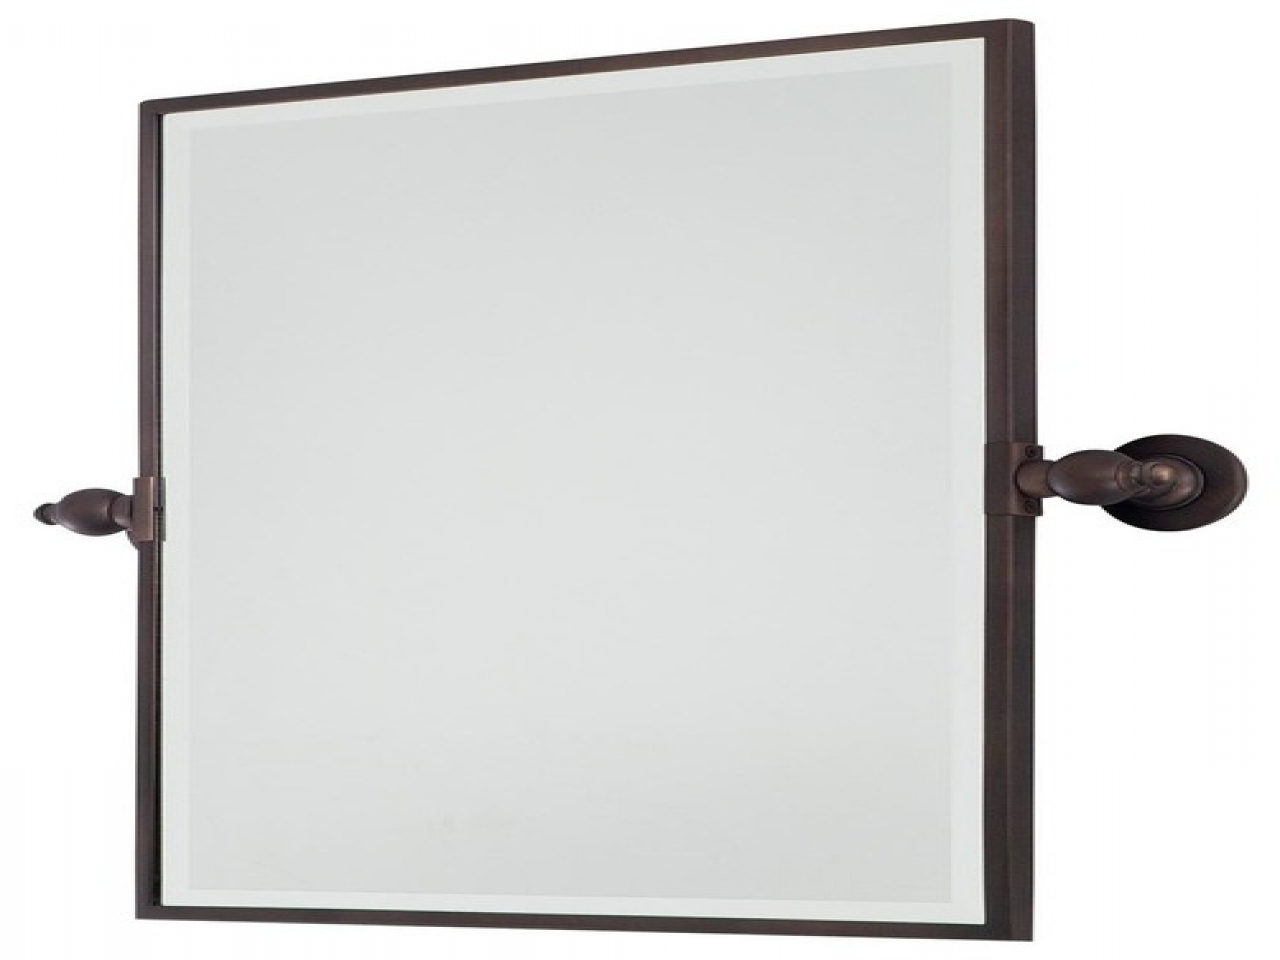 Widely Used Tilt Wall Mirrors With Tilt Wall Mirror – Pmpresssecretariat (View 19 of 20)